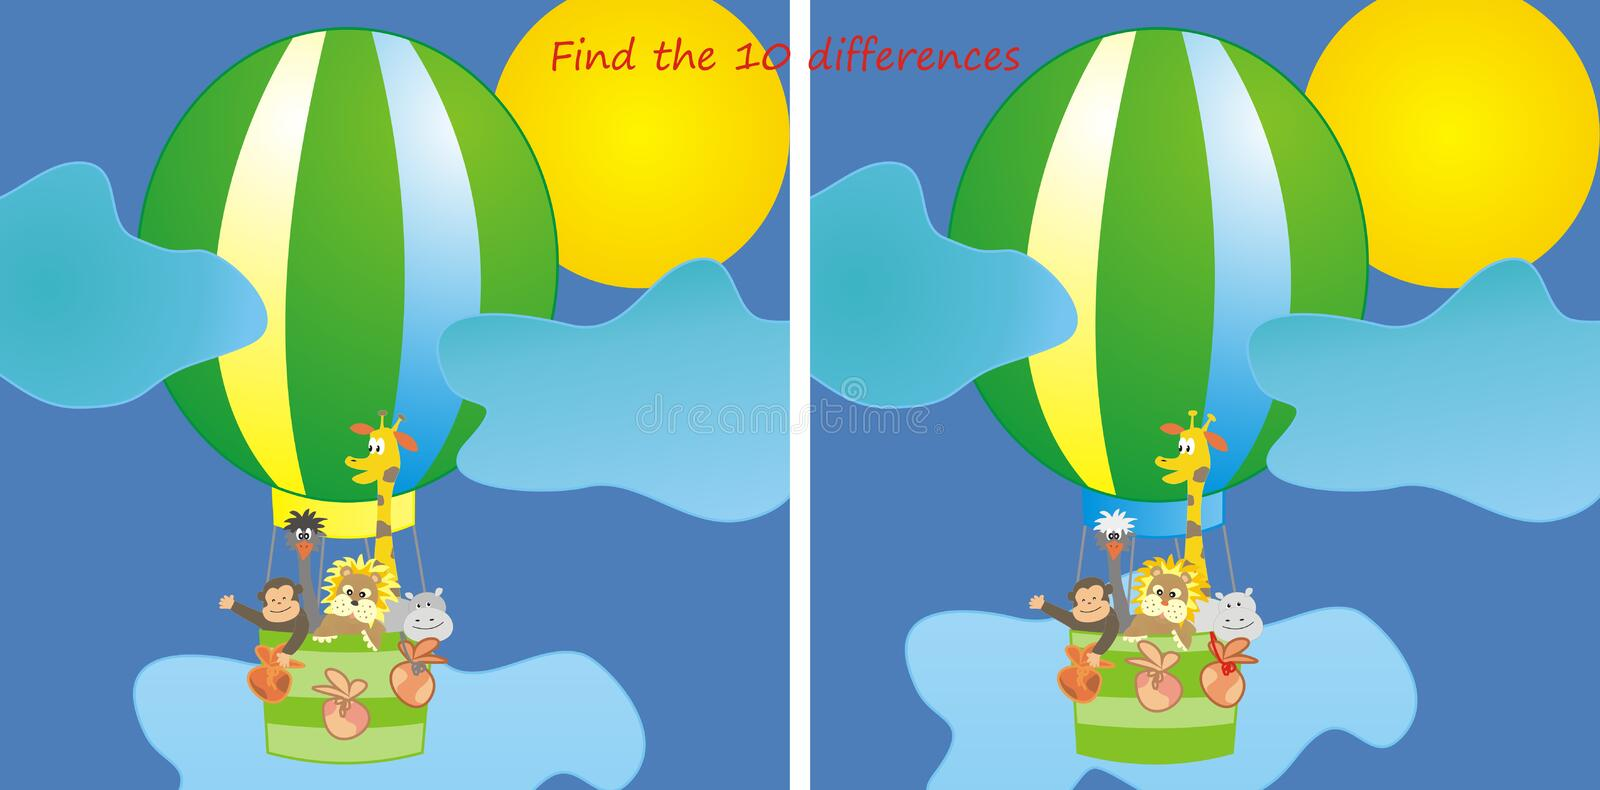 Animals in the balloon-10 differences vector illustration